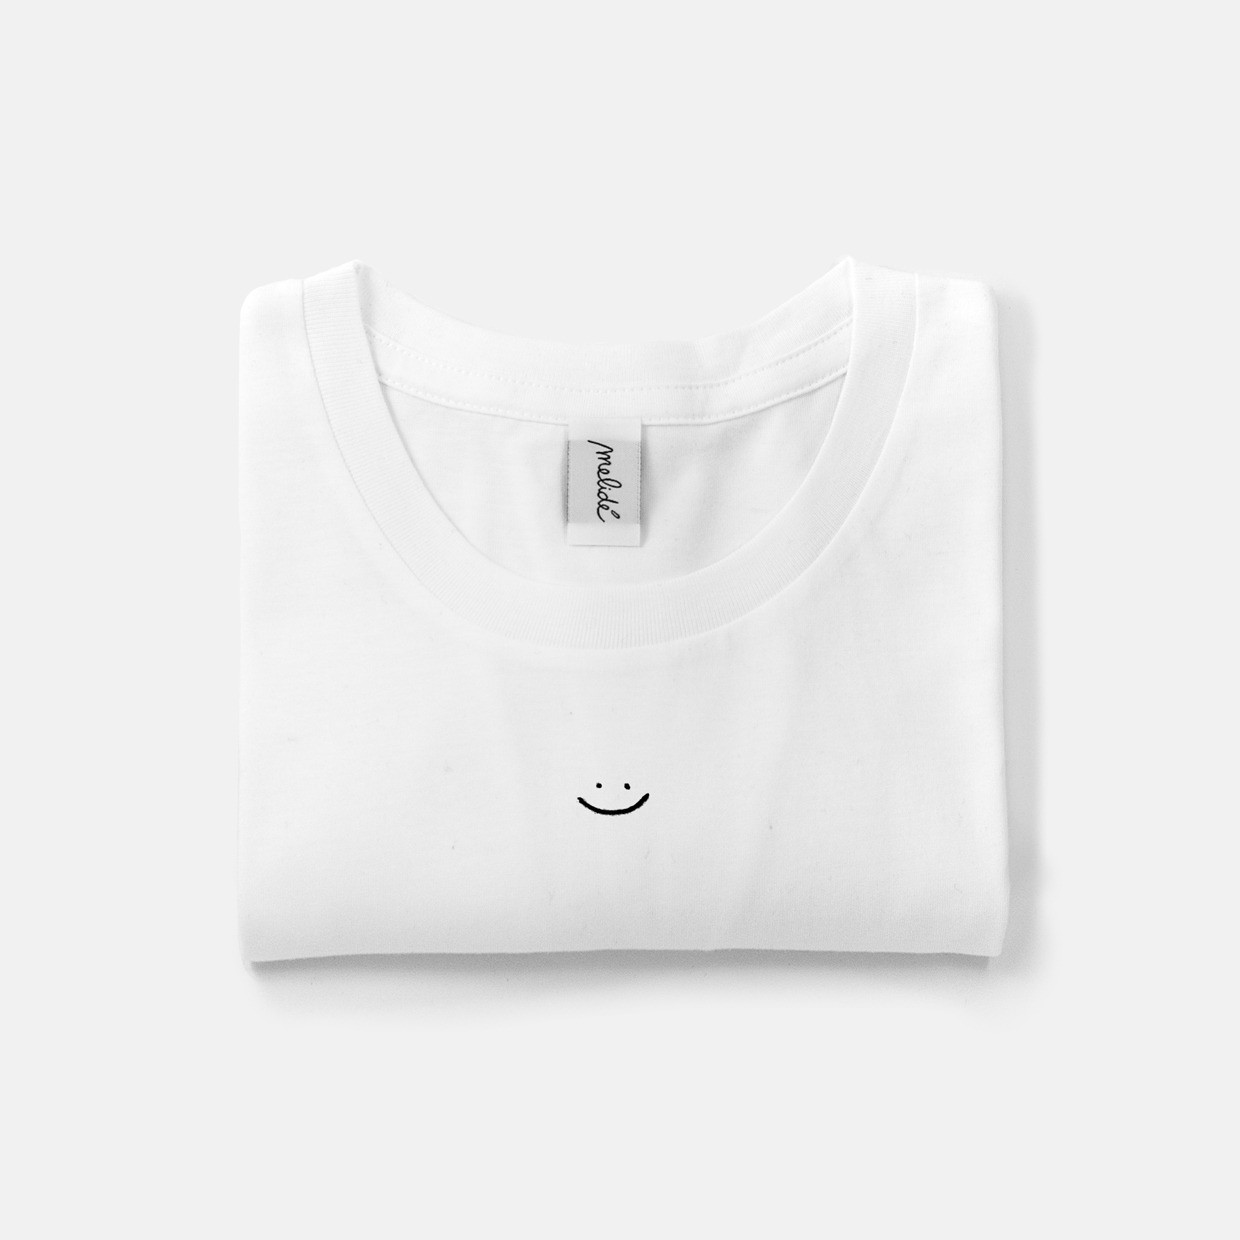 The SMILE ultimate tee